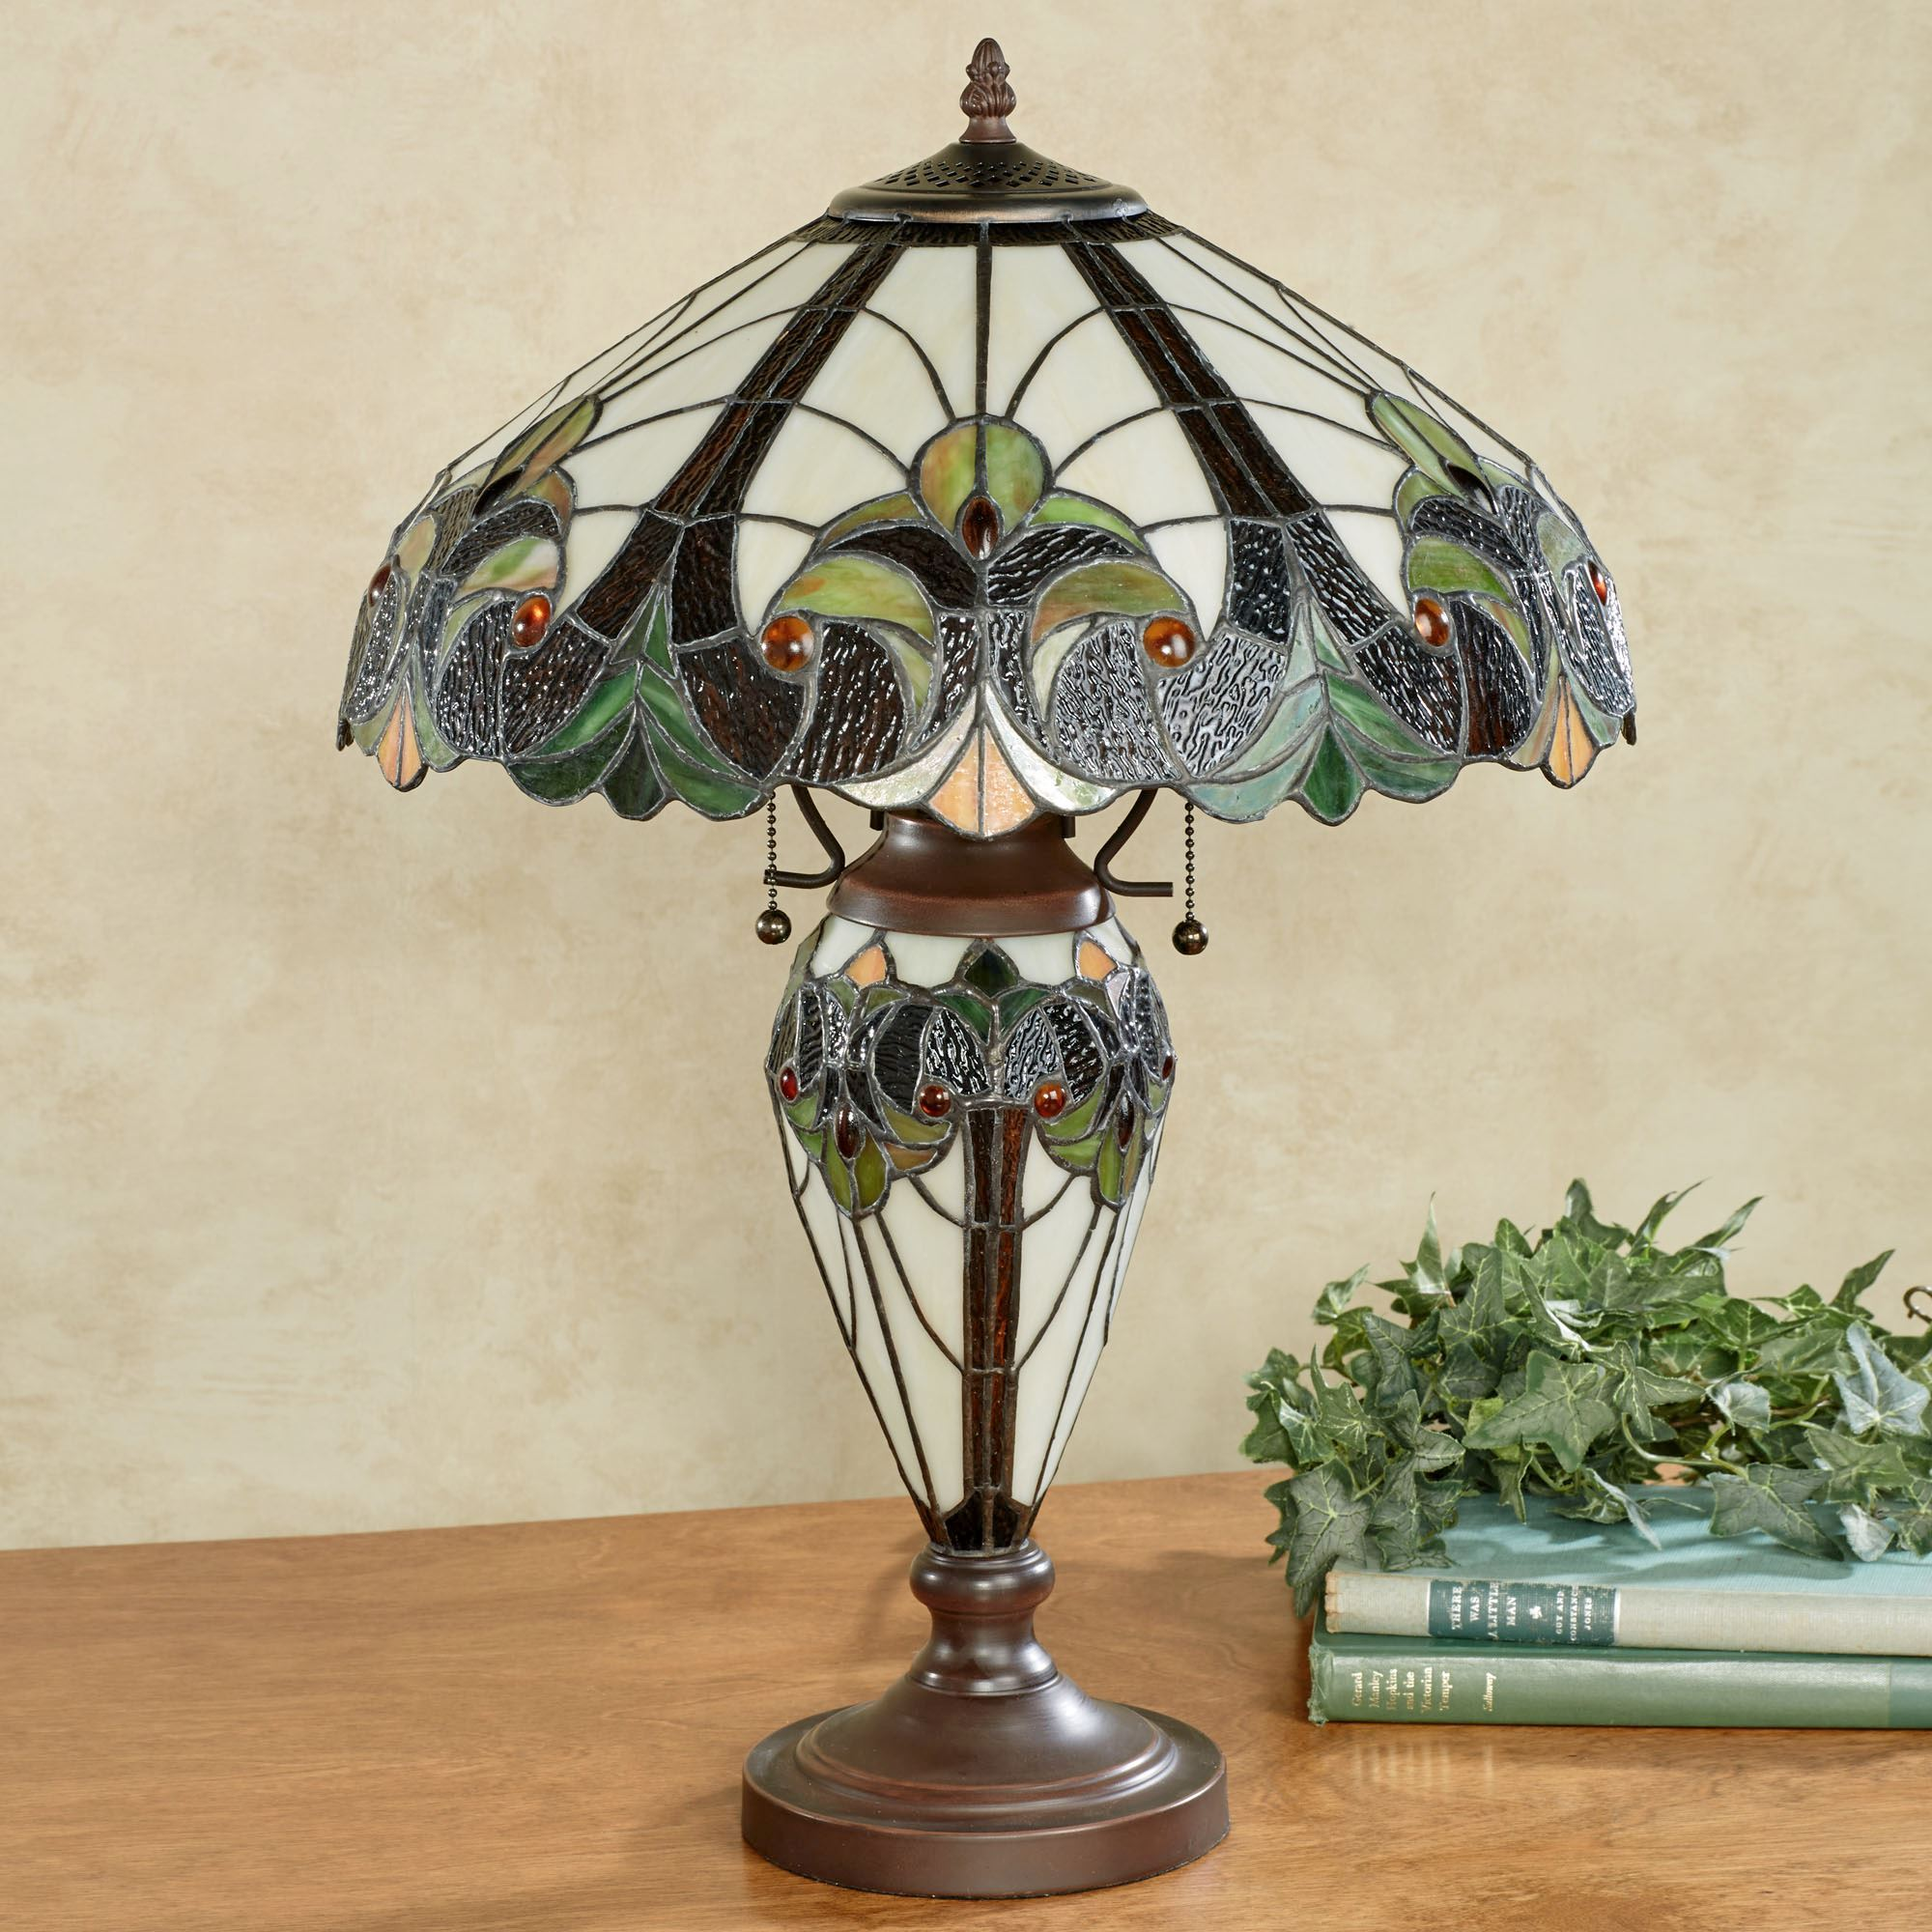 stained glass accent lamp antique tiffany lamps floor buffet table patio furniture for less modern design chair set west elm audio dale hanging industrial pub black living room